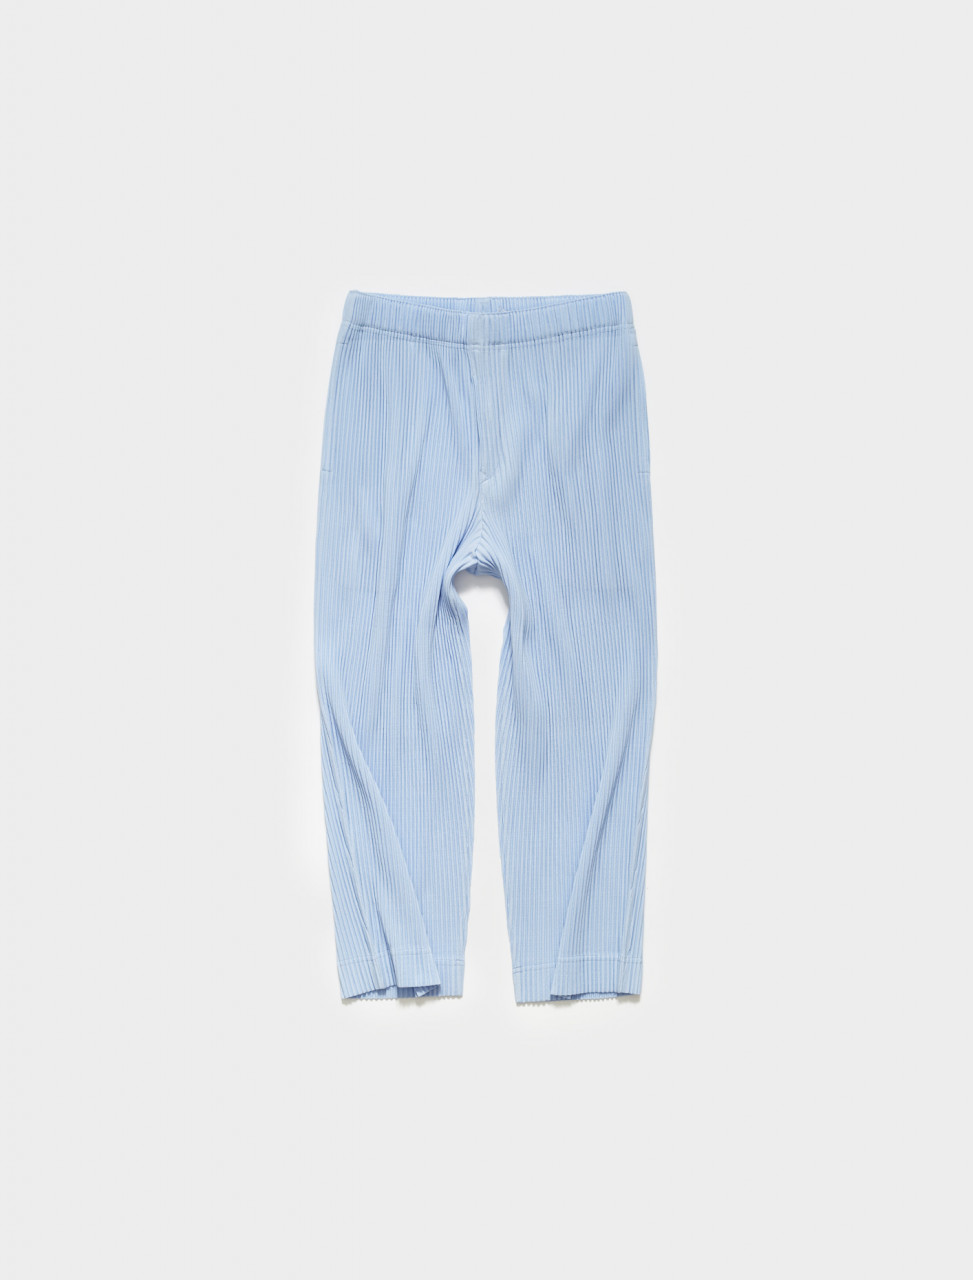 HP16JF149-71 HOMME PLISSE ISSEY MIYAKE Pleated Trousers in Saxe Blue